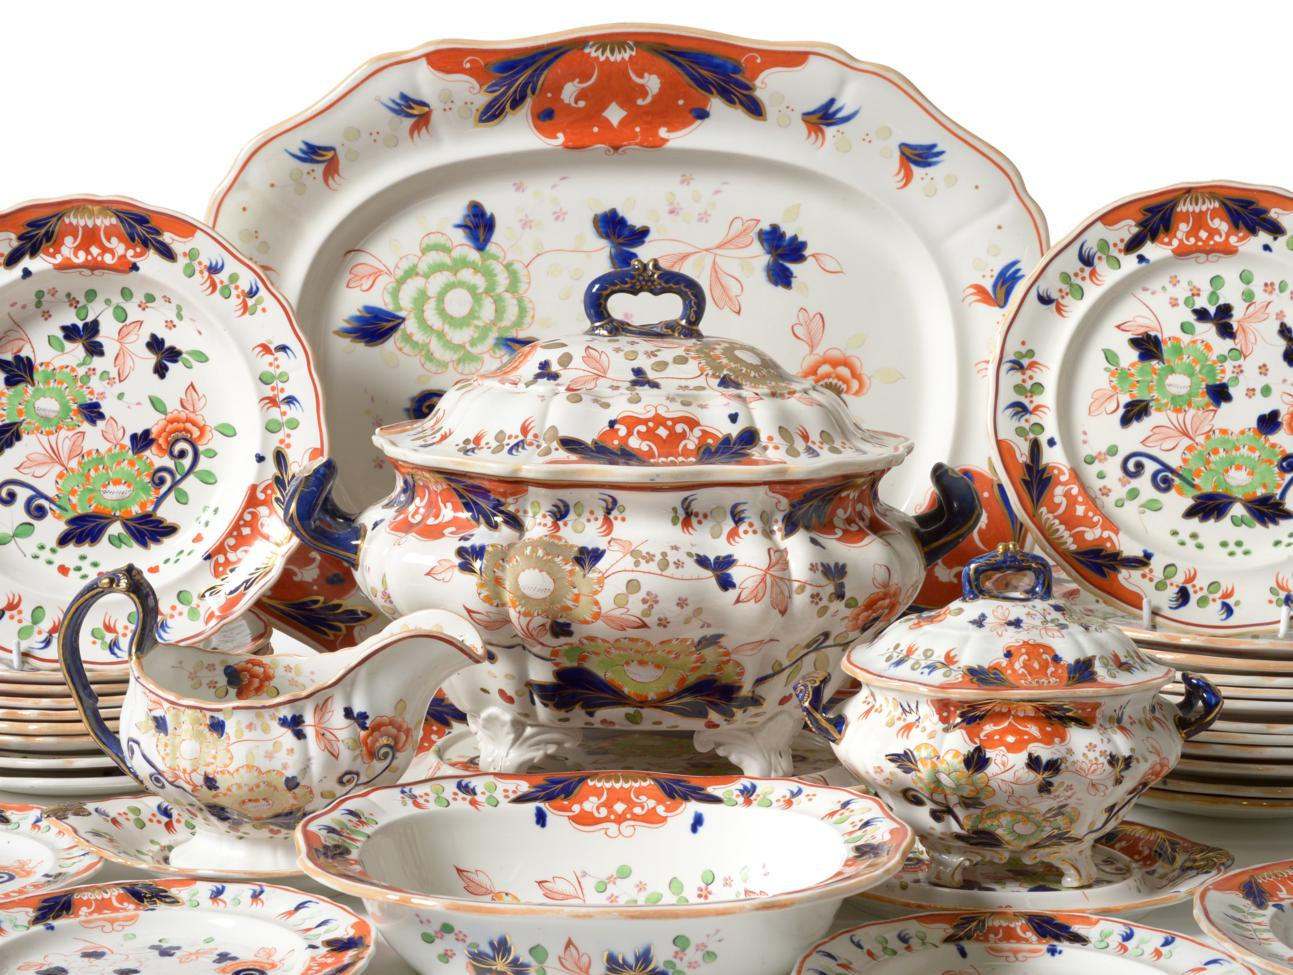 Lot 29 - A Davenport Stone China Dinner Service, mid 19th century, decorated with an Imari type design,...